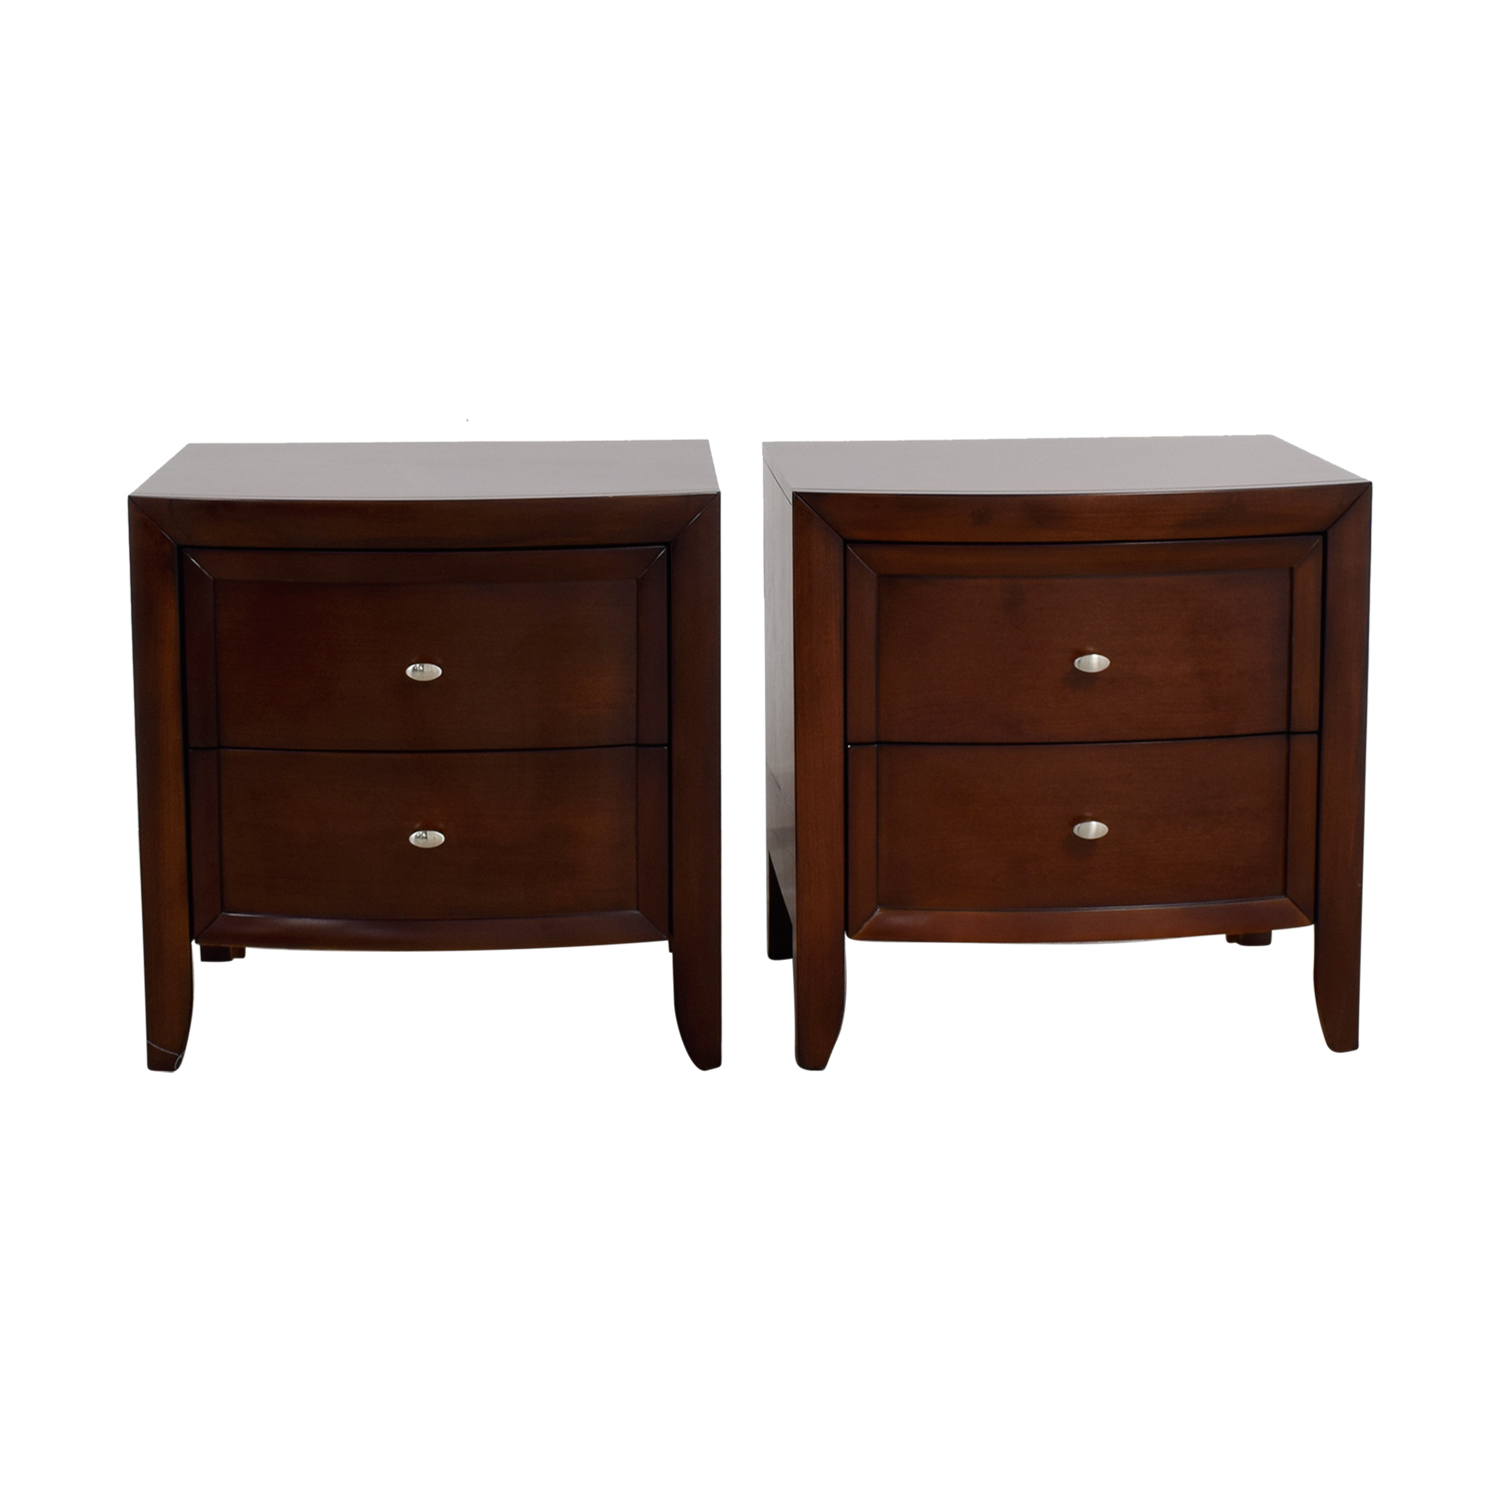 shop Macys Yardley Two-Drawer Nightstands Macys